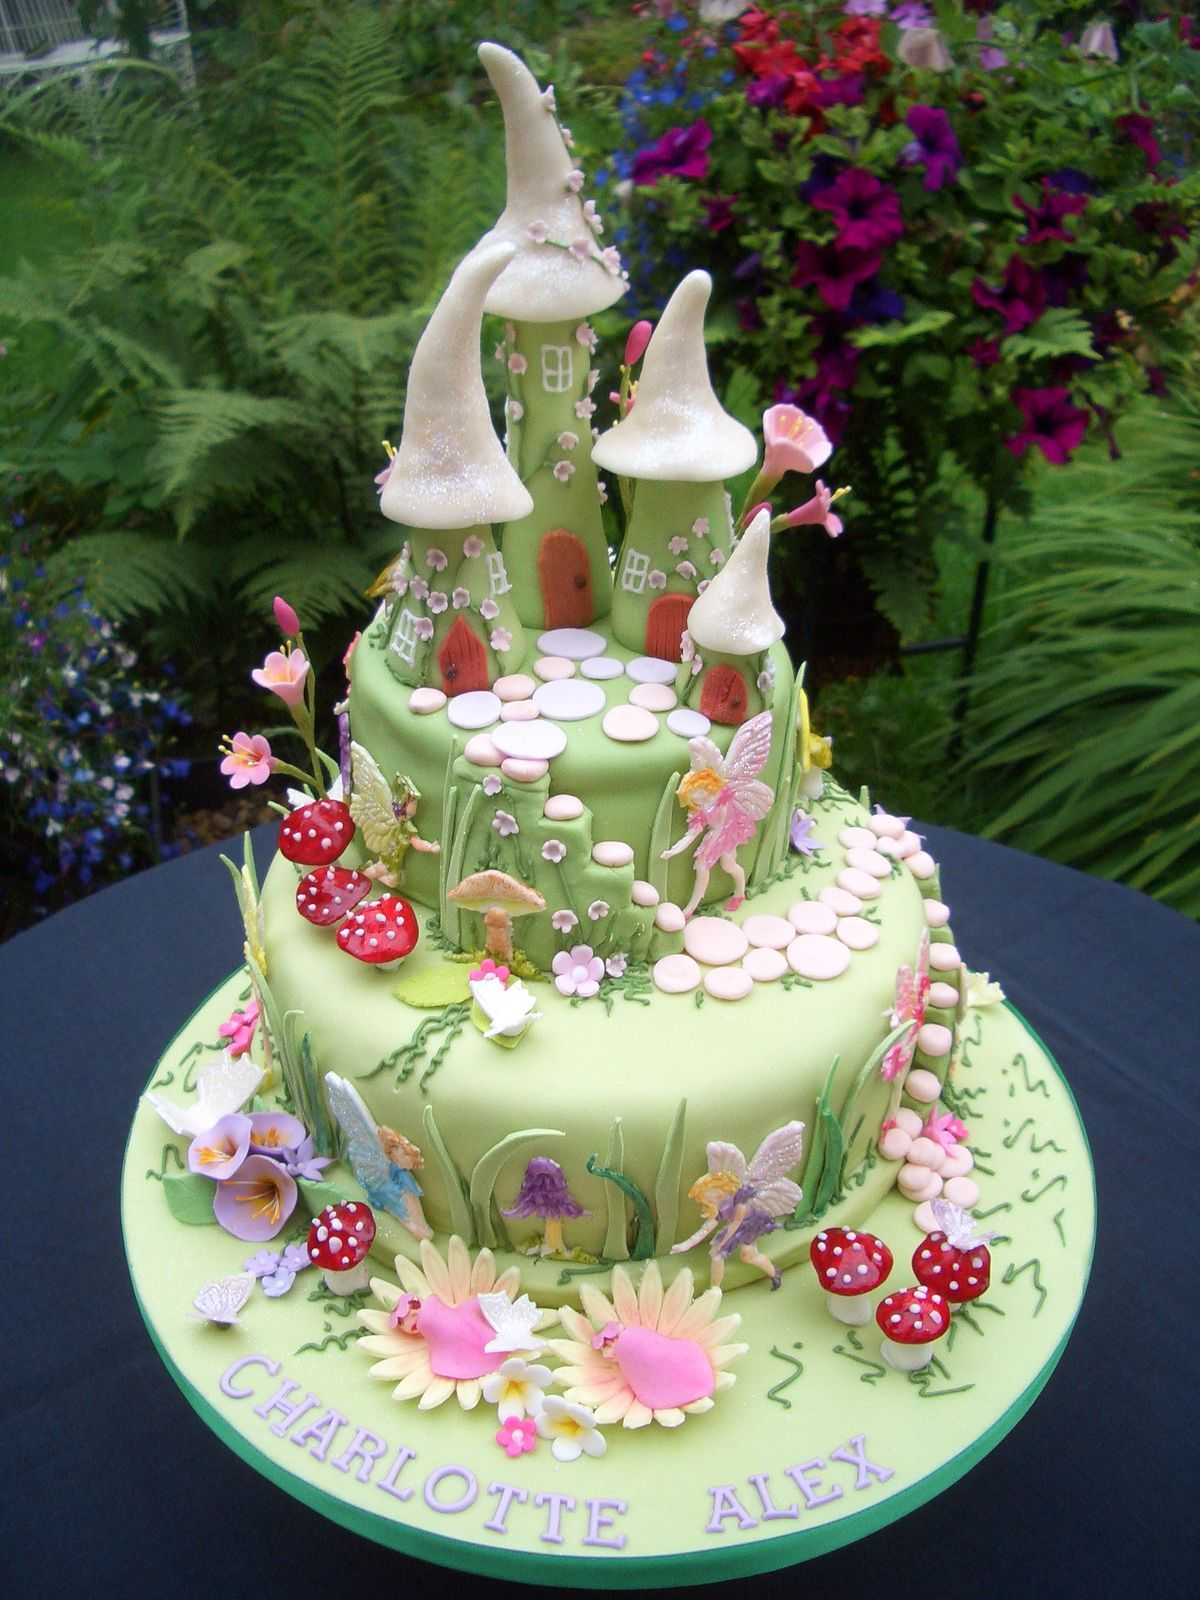 Pin By Teresa Hierholzer On Cakes